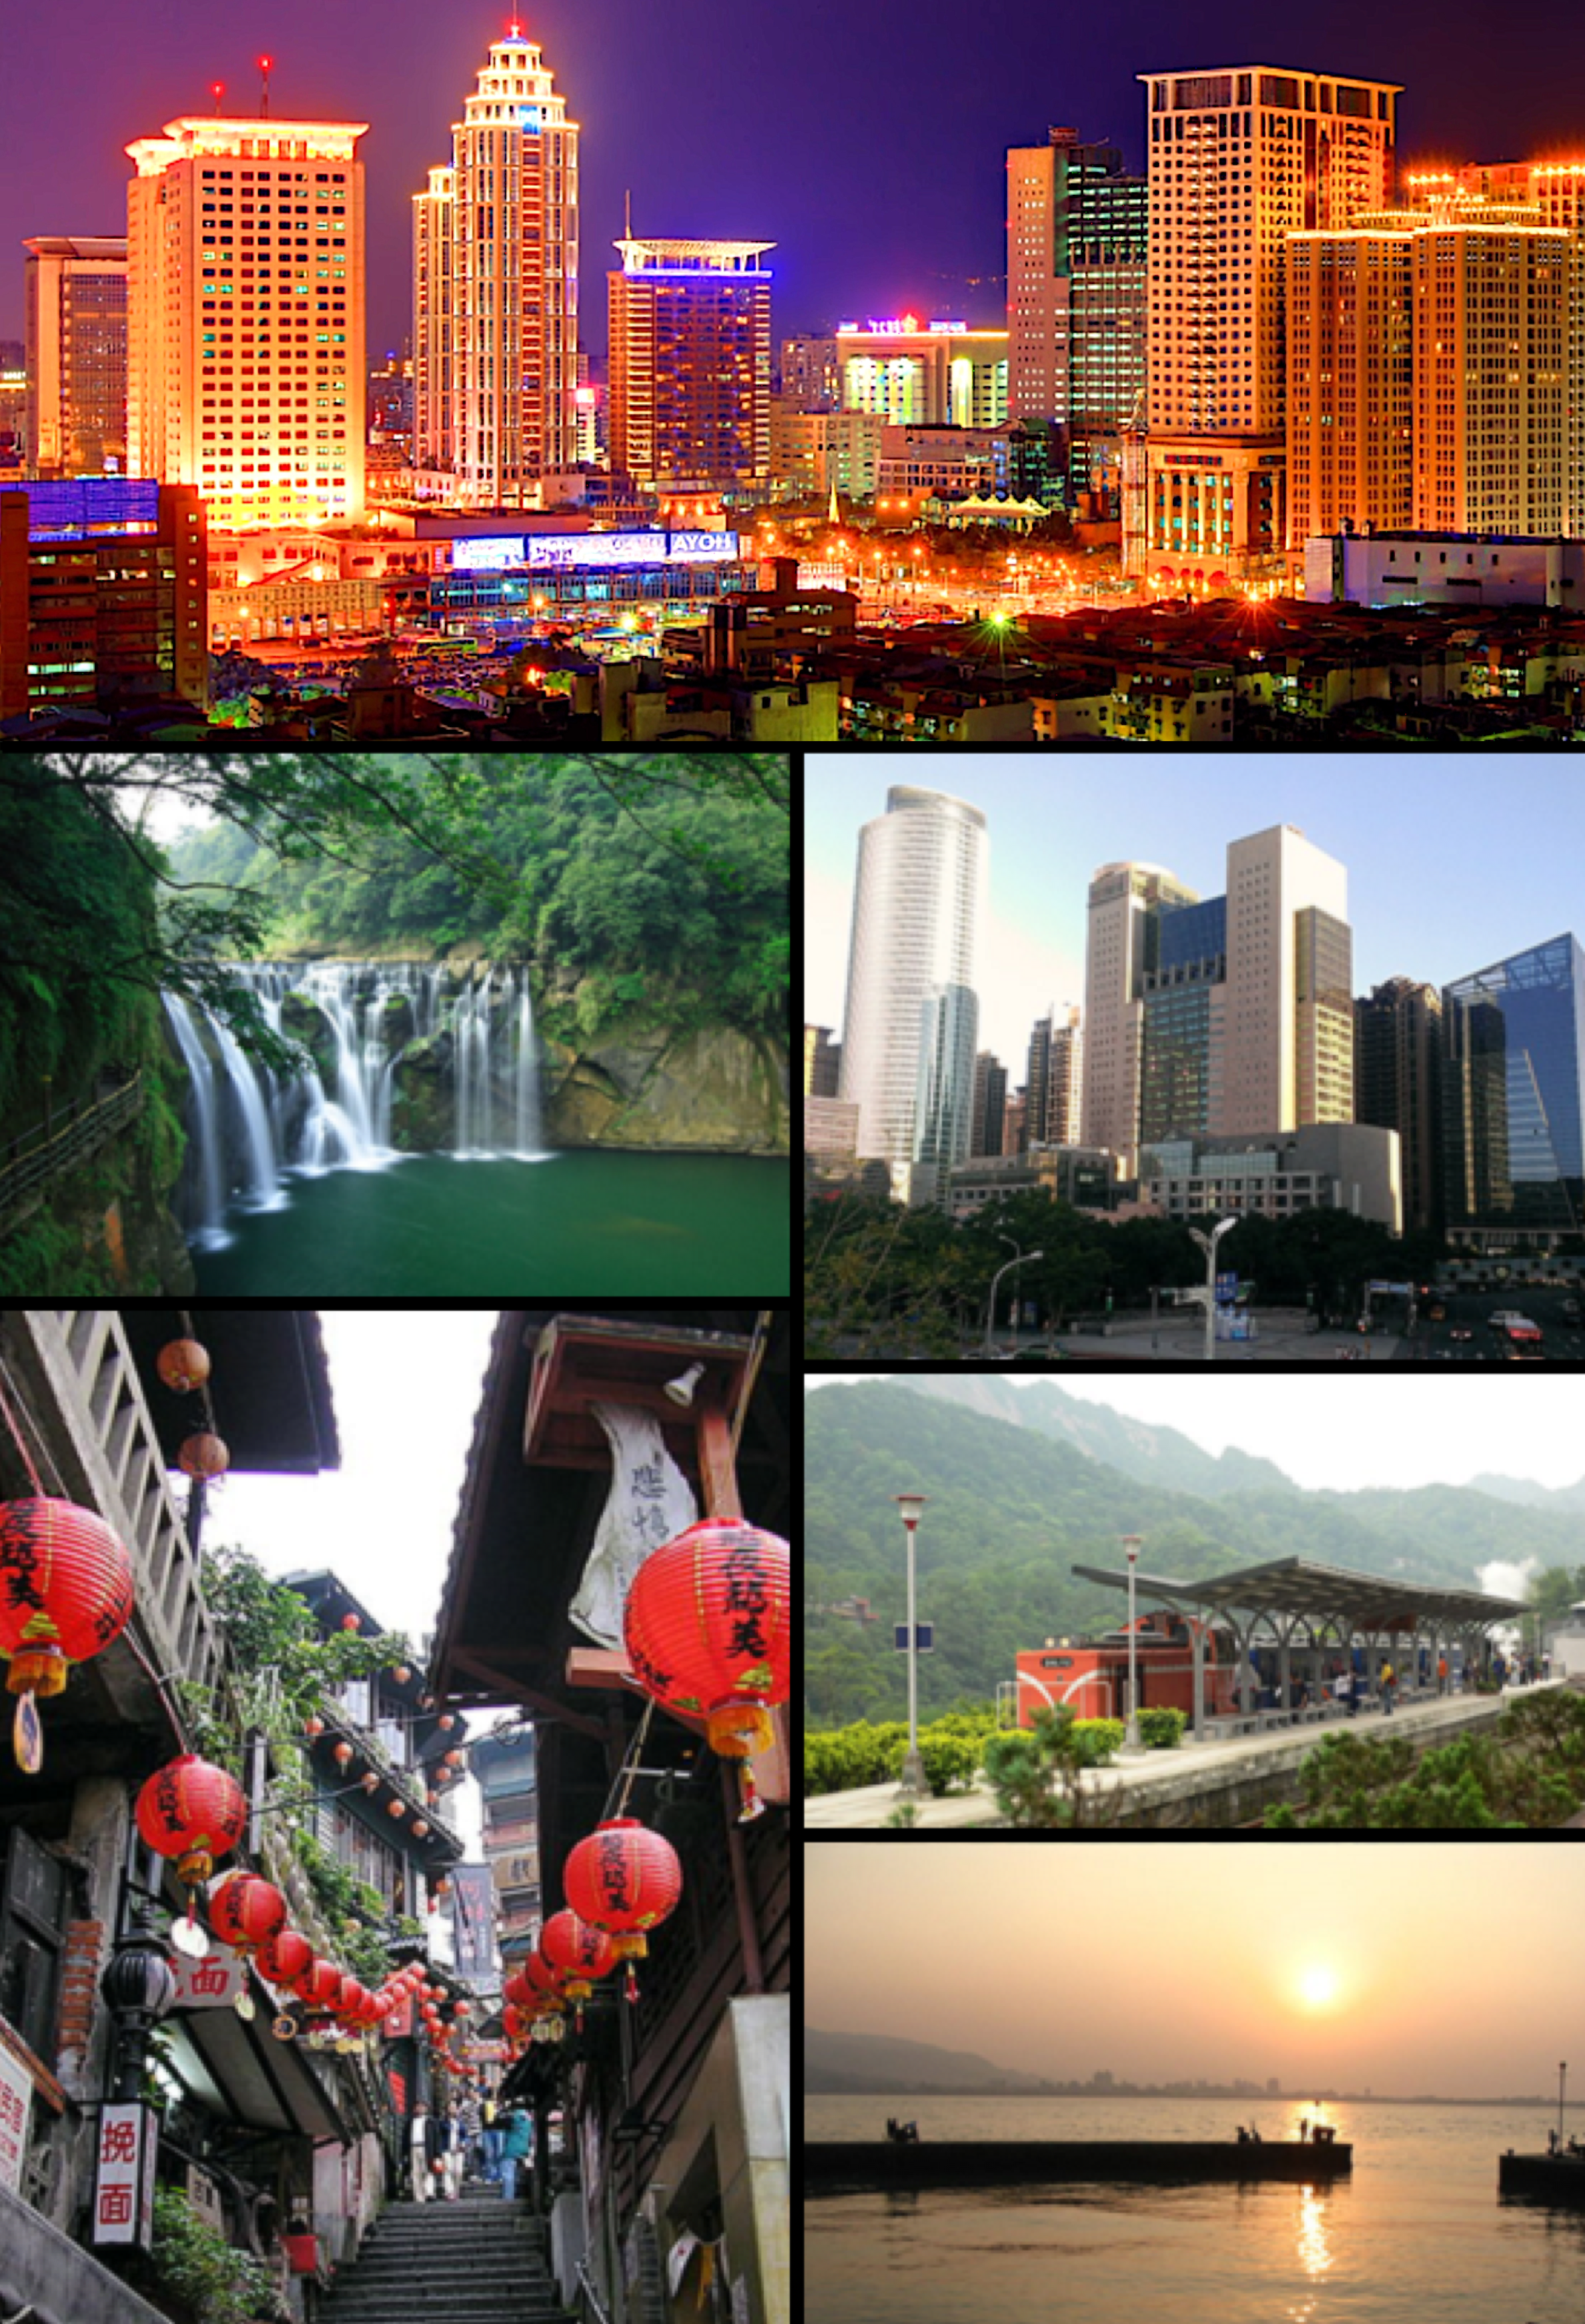 Clockwise from top: New Taipei Bridge, Banqiao District, Pingxi Line, Tamsui River, Jiufen, Shifen waterfall